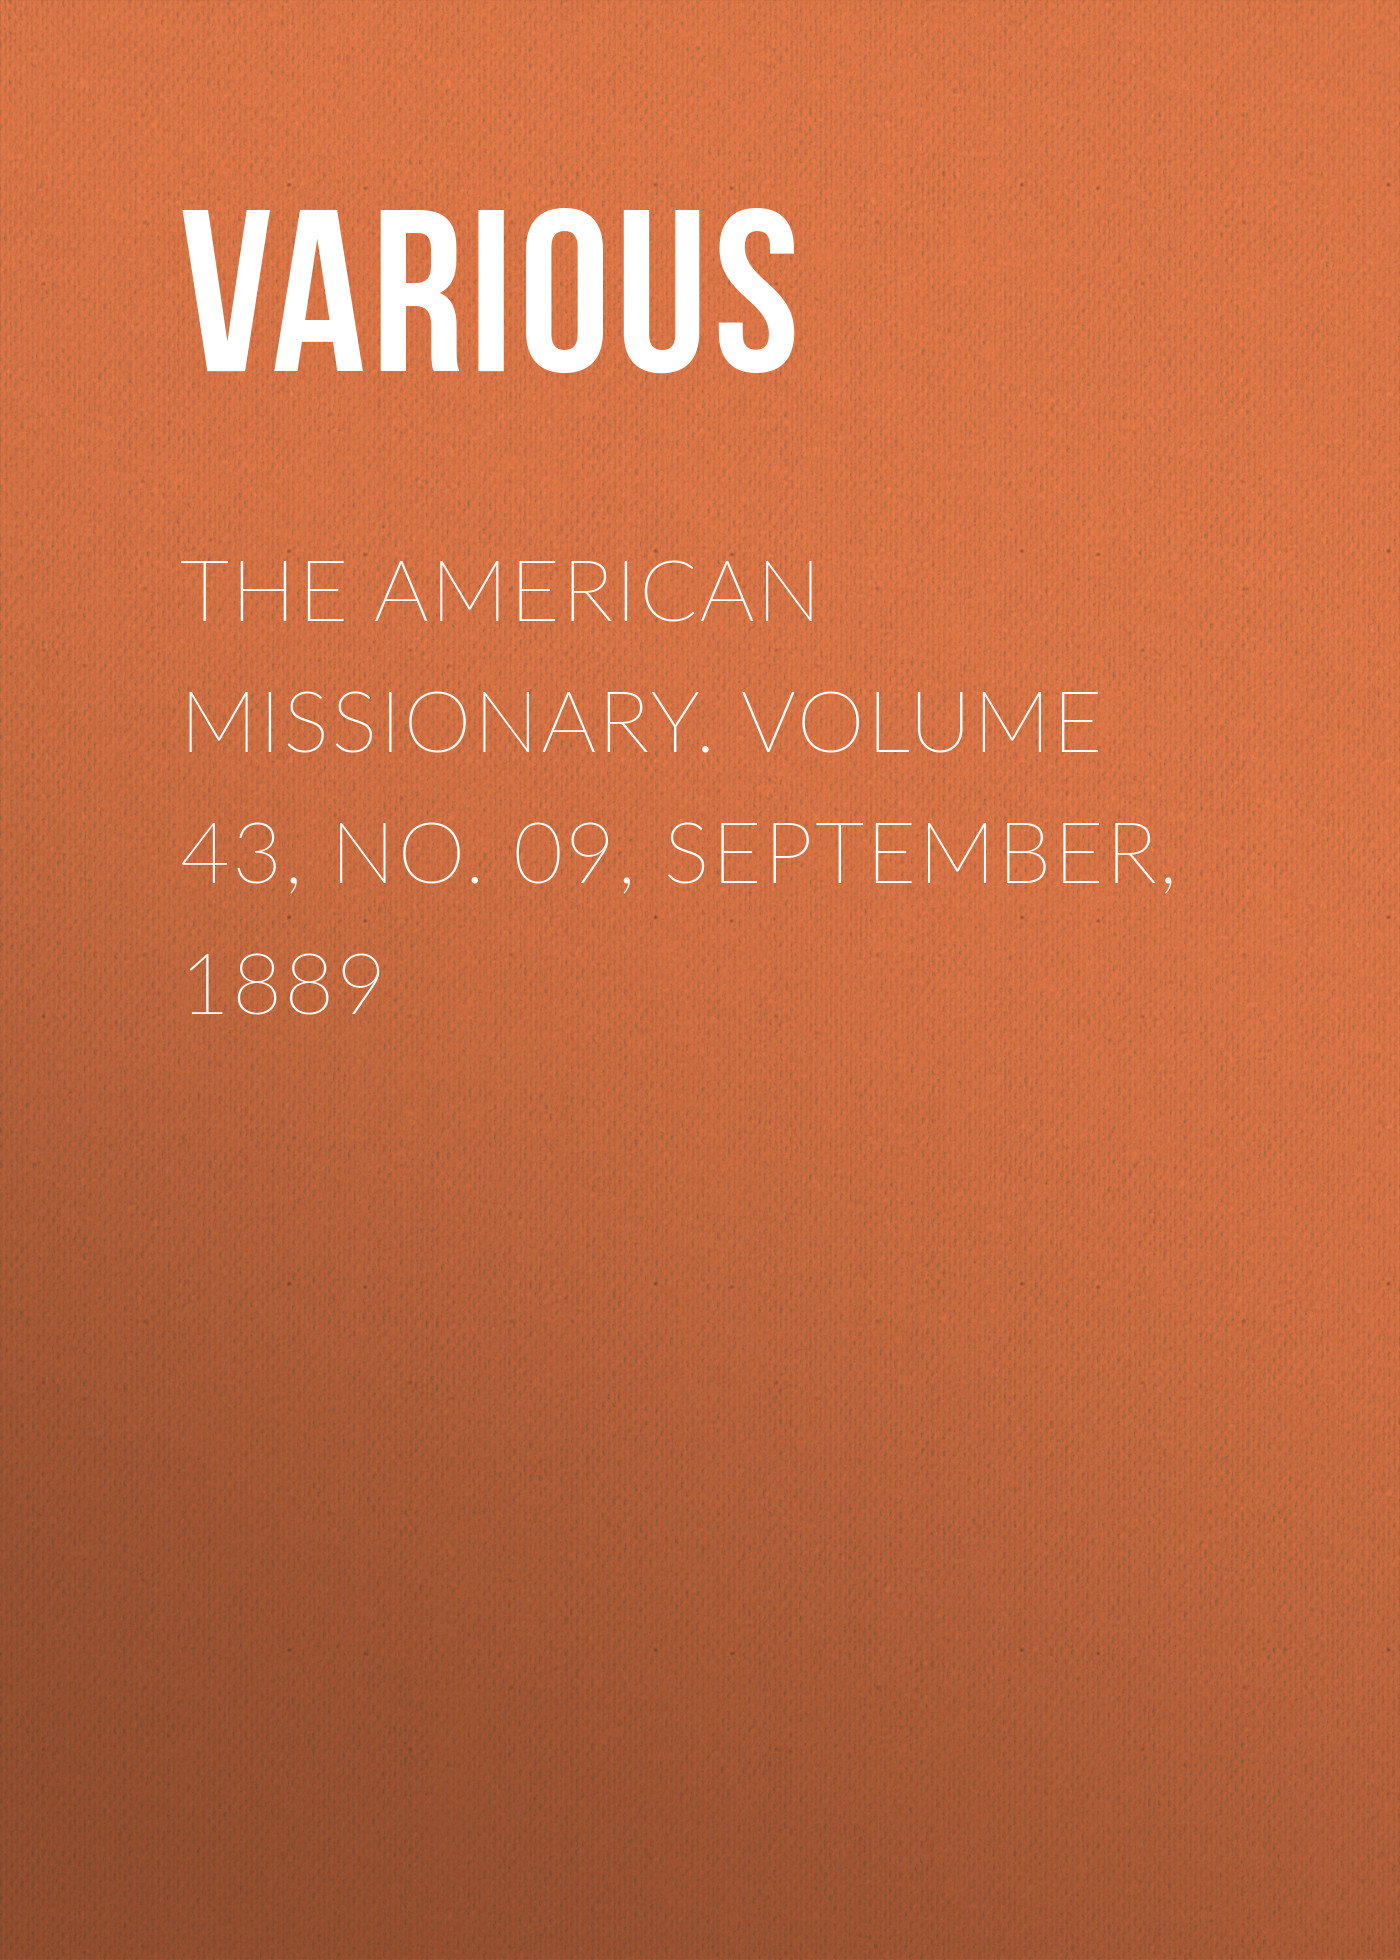 Various The American Missionary. Volume 43, No. 09, September, 1889